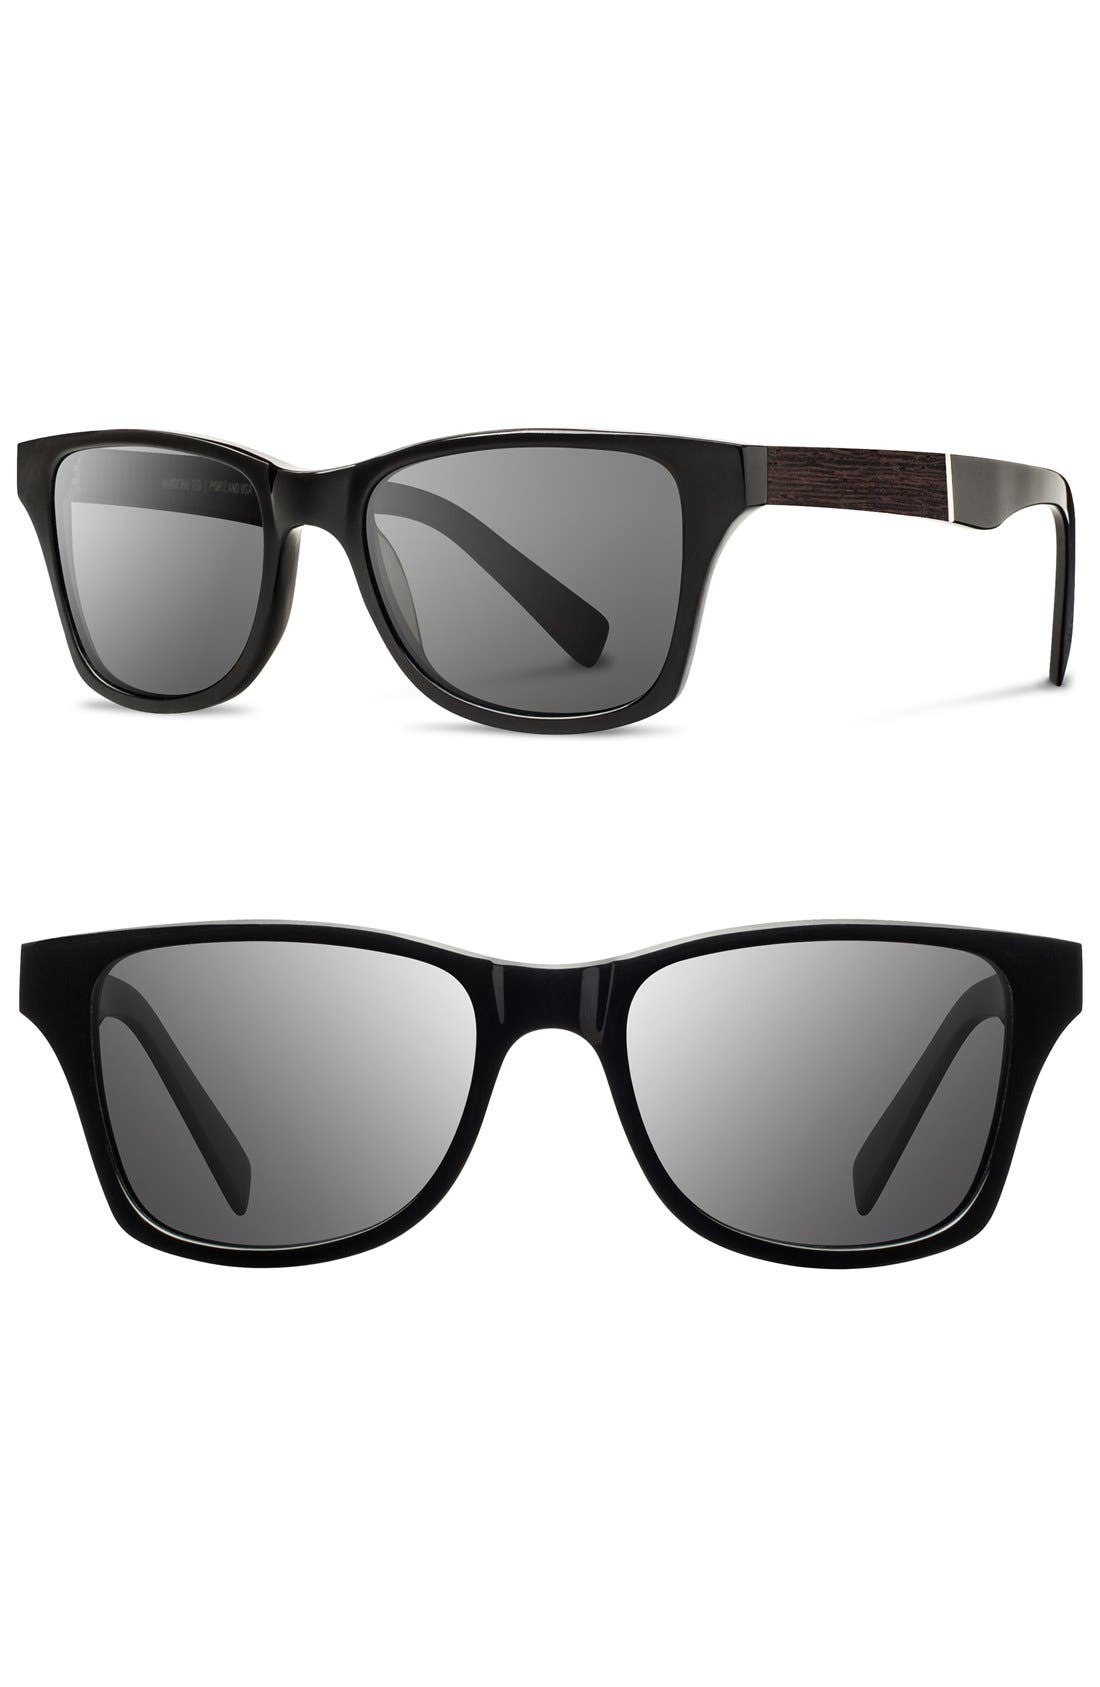 'Canby' 53mm Polarized Wood Sunglasses,                         Main,                         color, 001